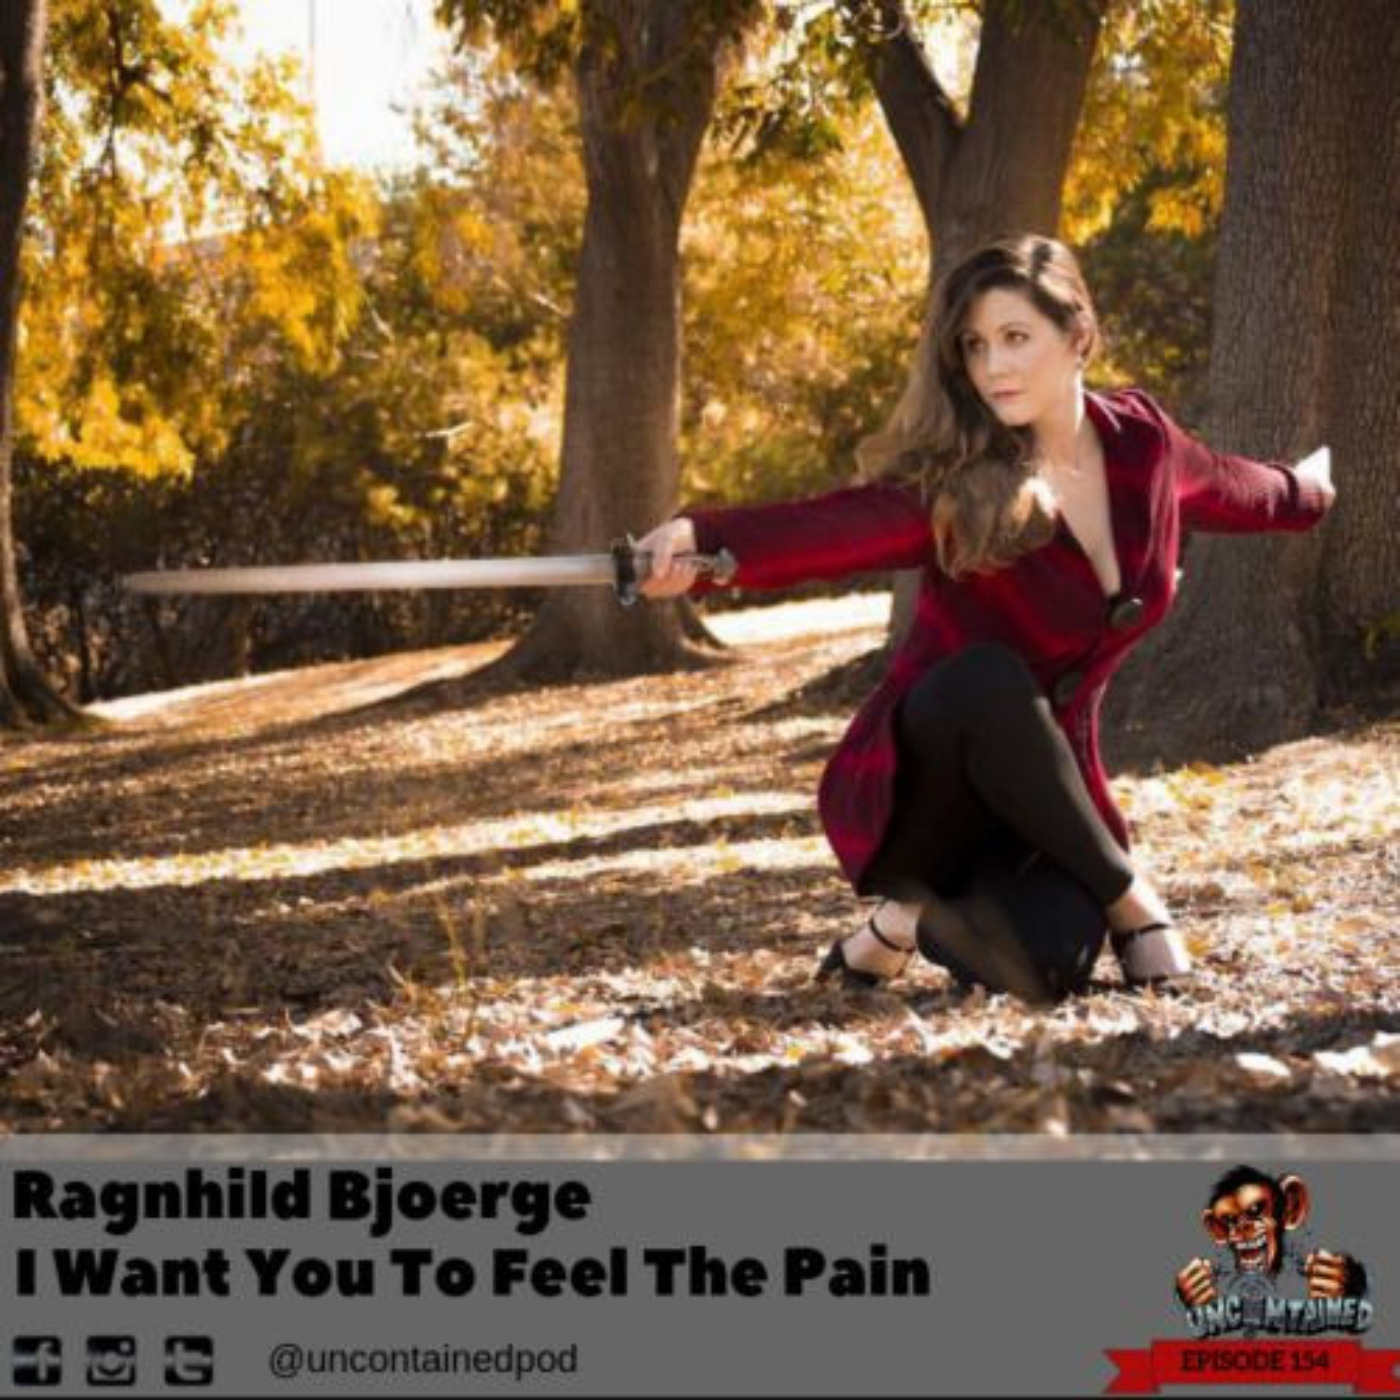 Episode 154: I Want You To Feel The Pain - Ragnhild Bjoerge